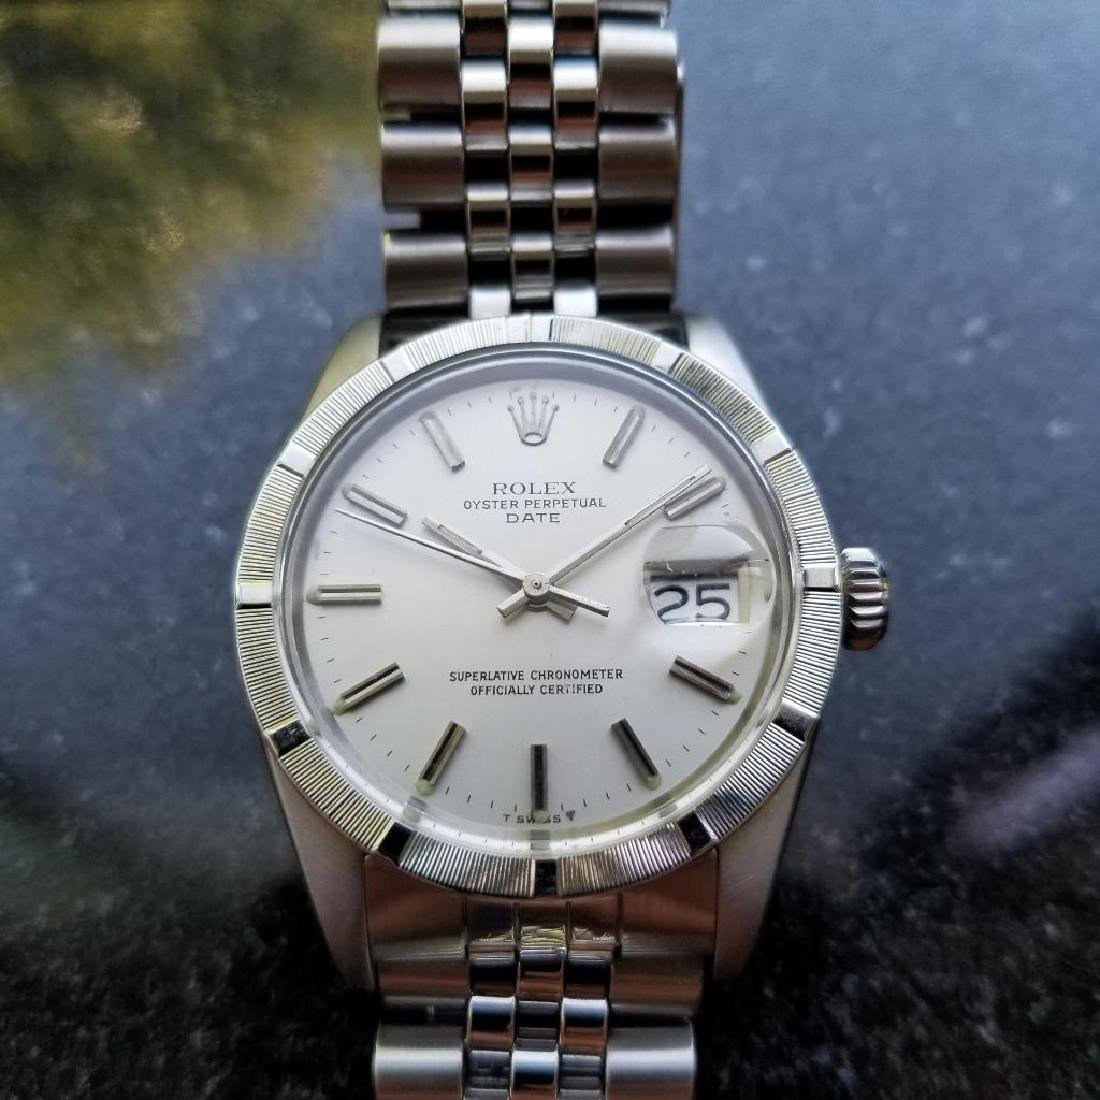 Rolex Oyster Perpetual 1501 Date Vintage 1977 Auto 35mm - 3